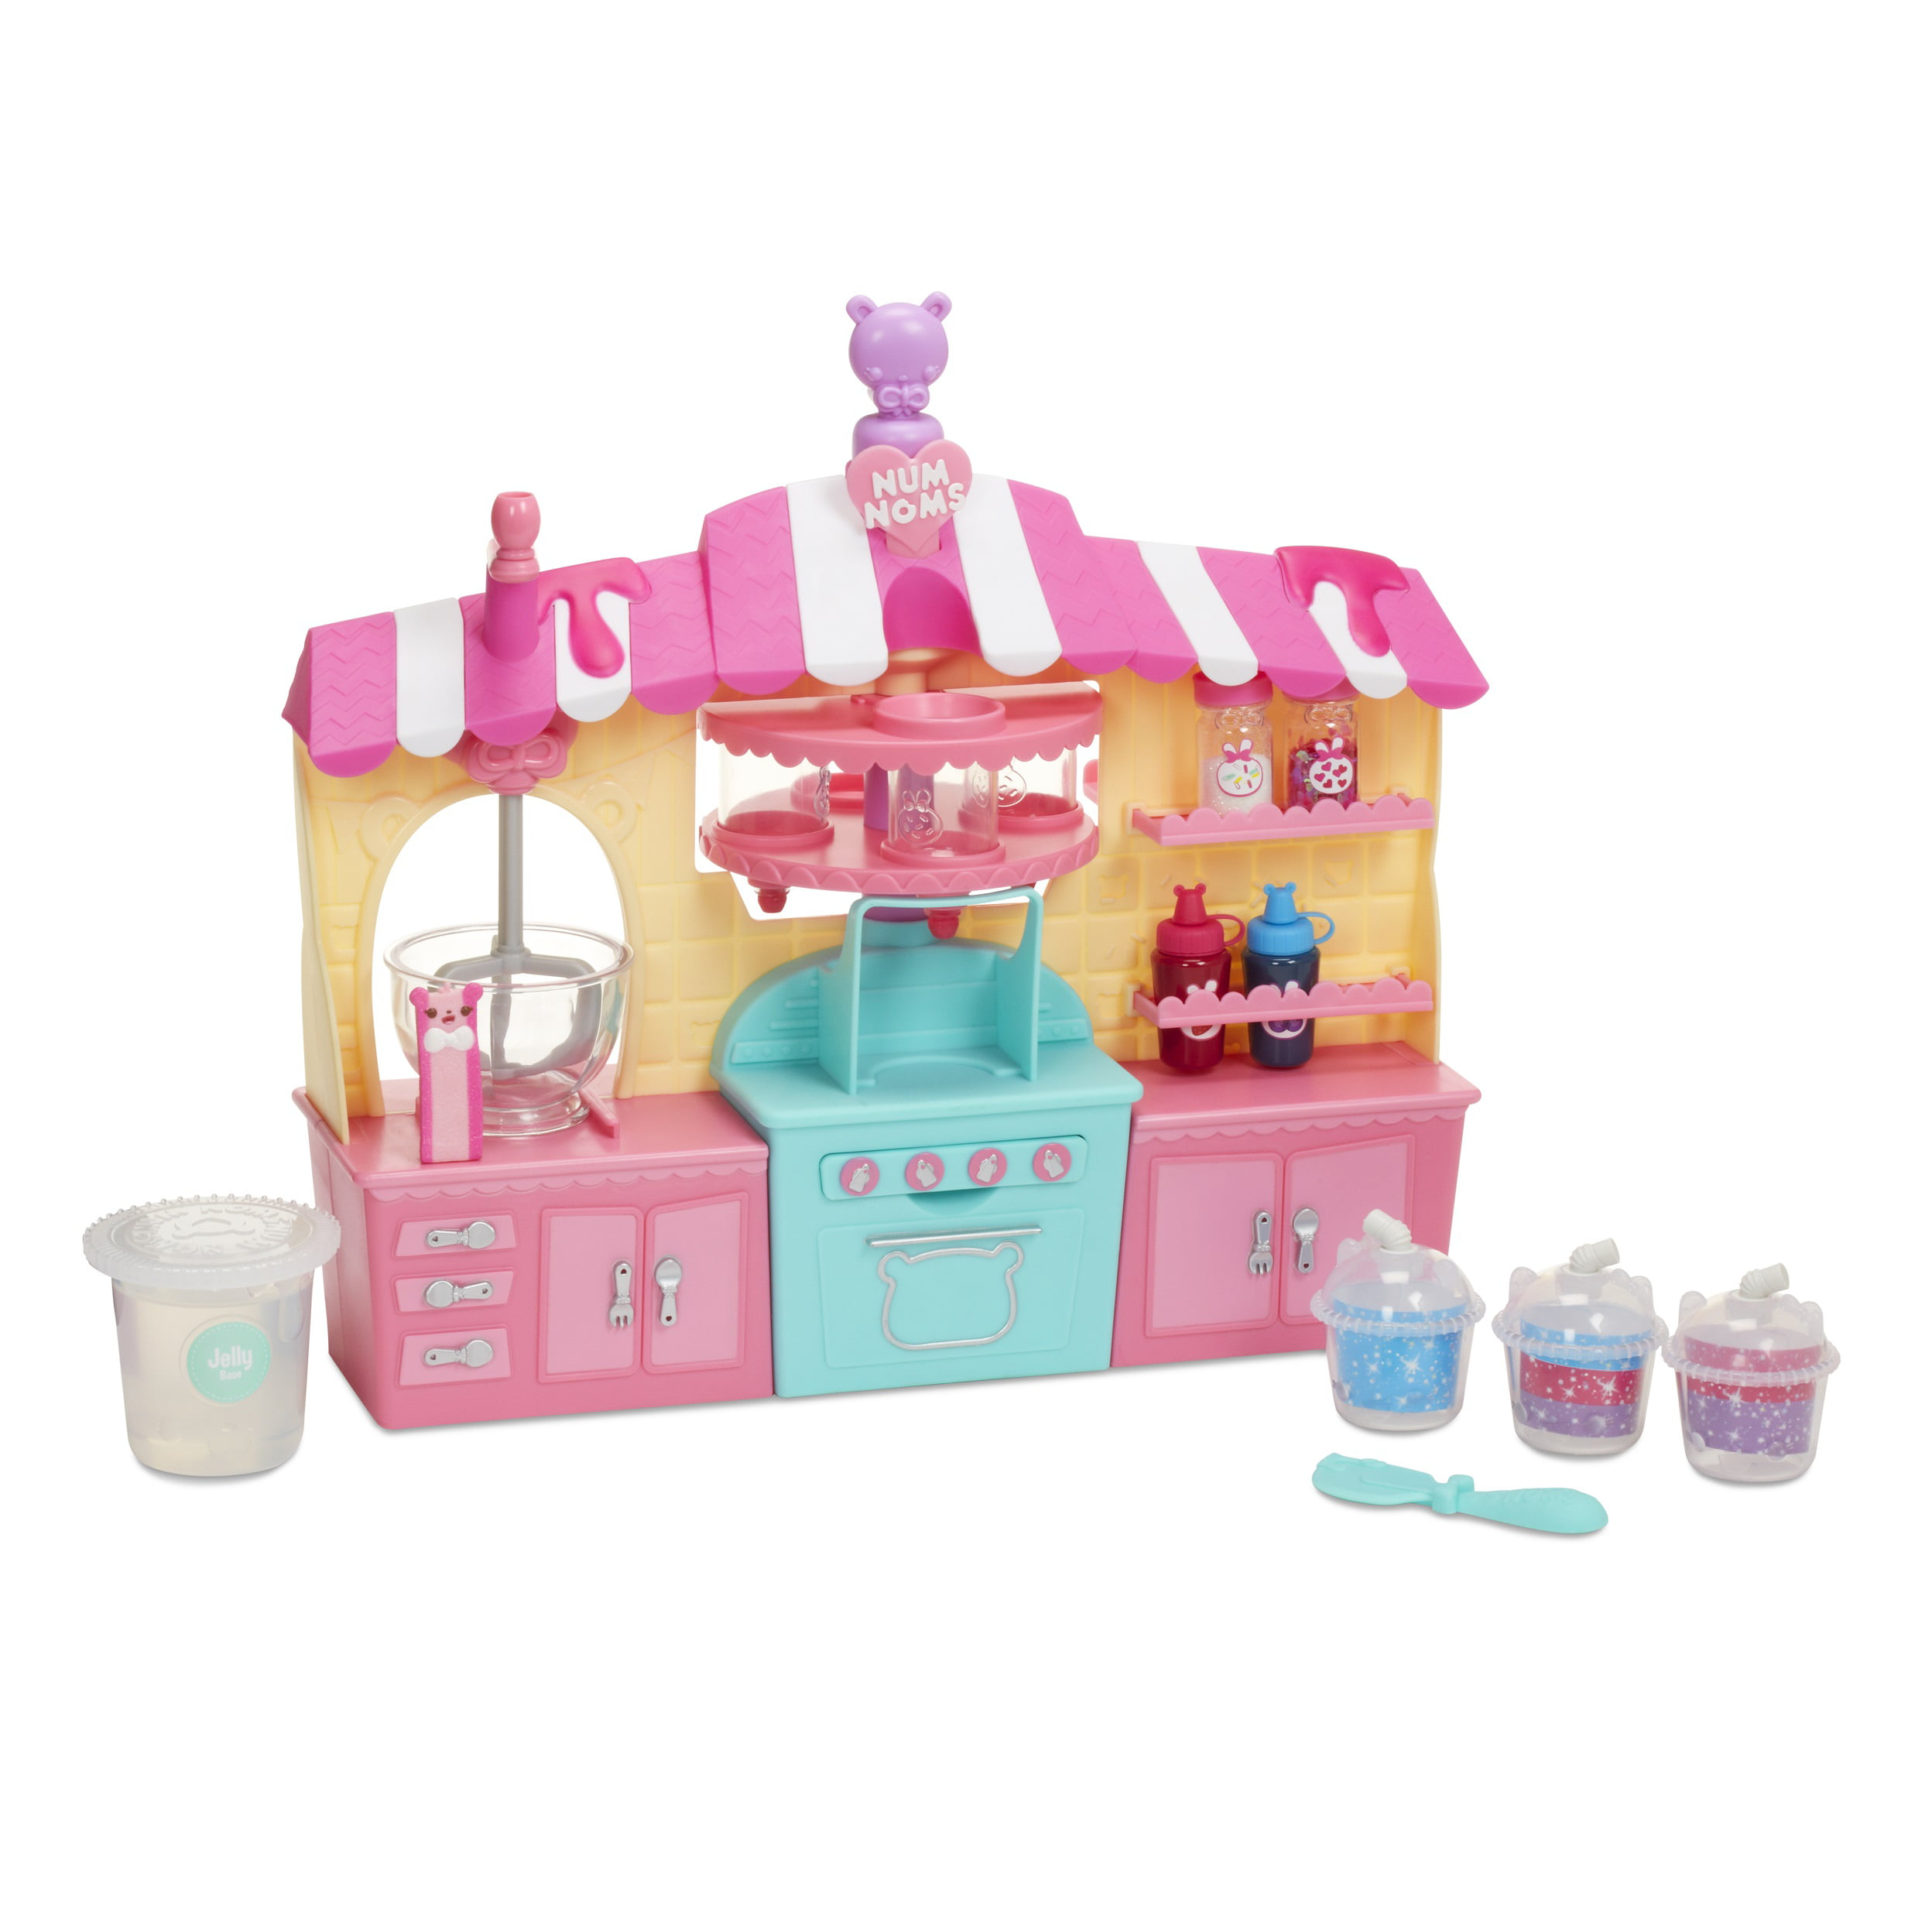 Num Noms Snackables Scented Silly Shakes Slime Maker Playset